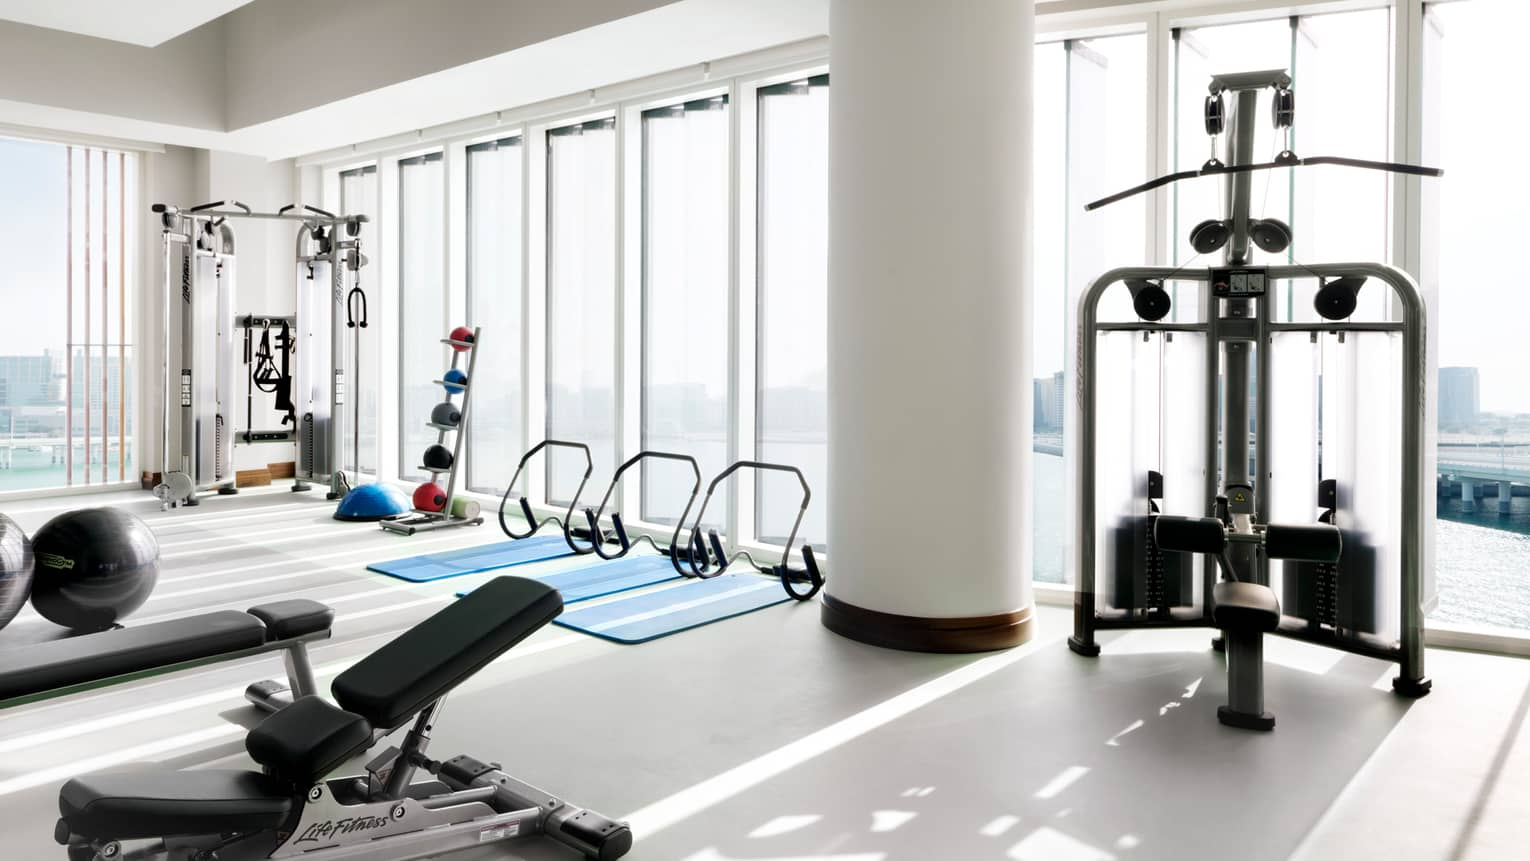 Fitness centre with sunny corner windows, weightlifting and cardio machines, three yoga mats